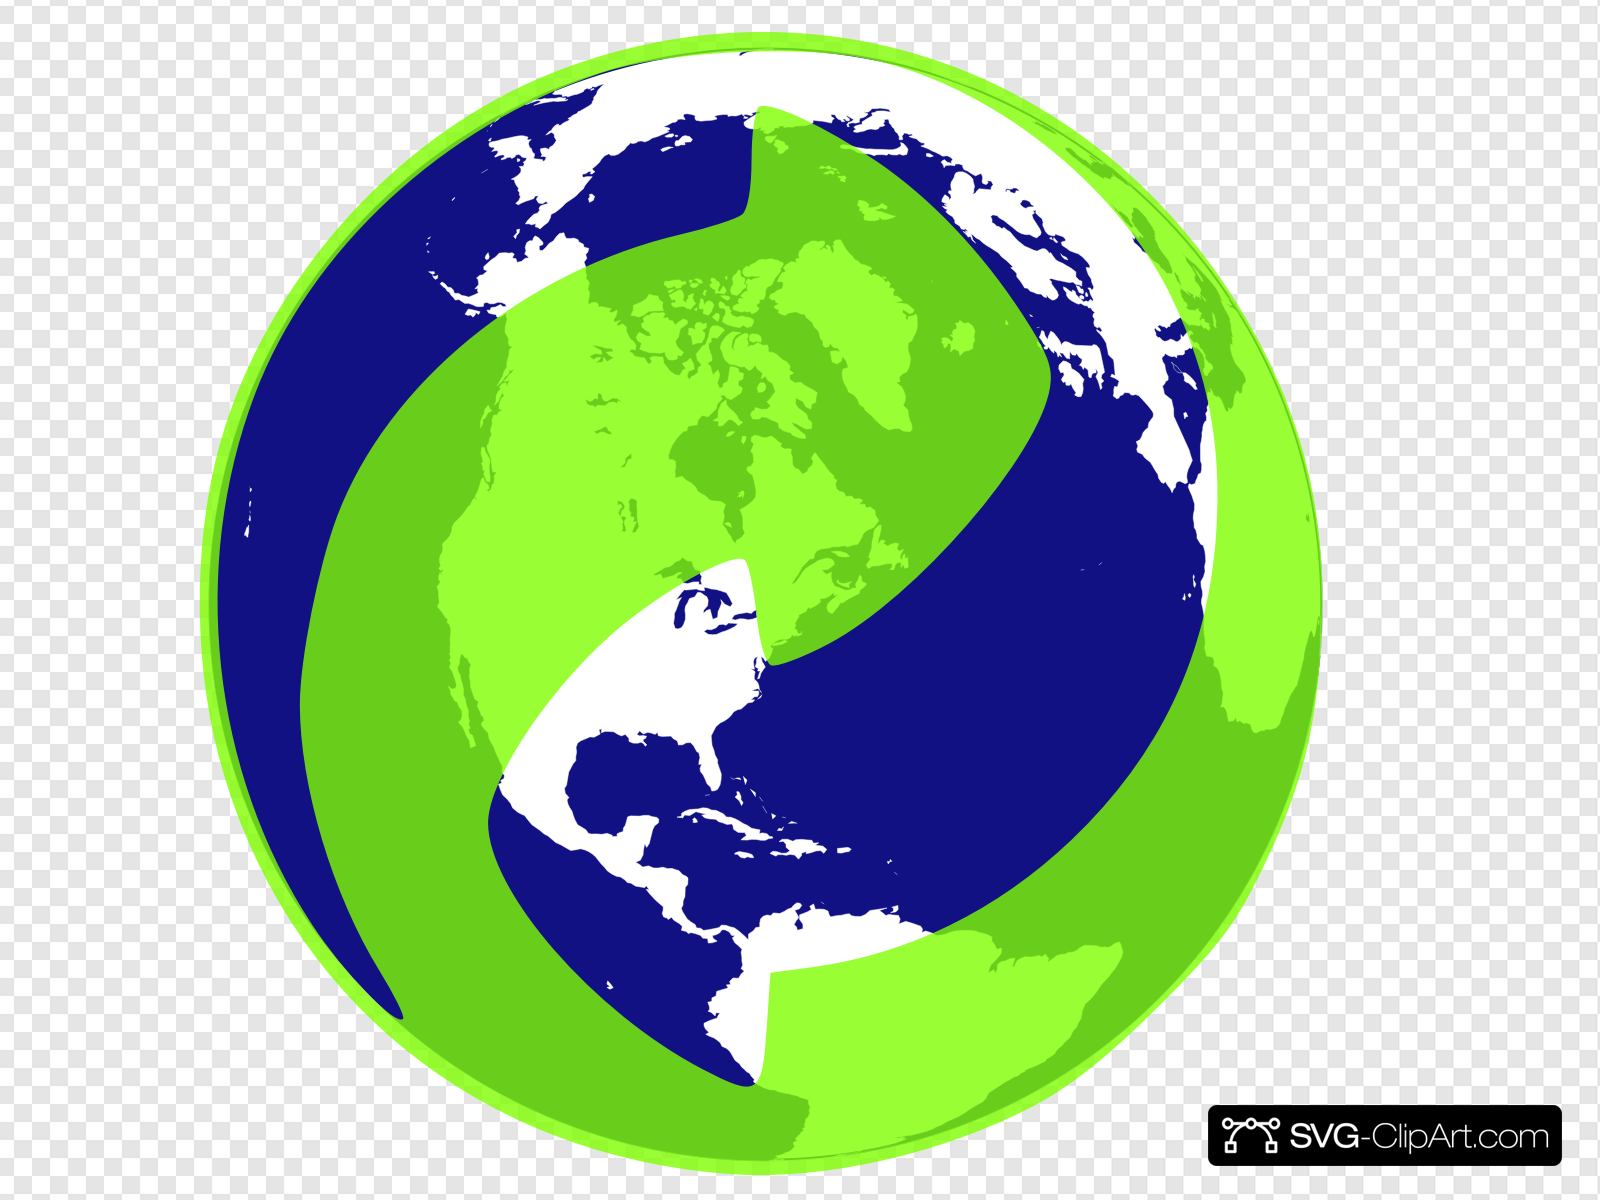 Recycle Earth Clip art, Icon and SVG.